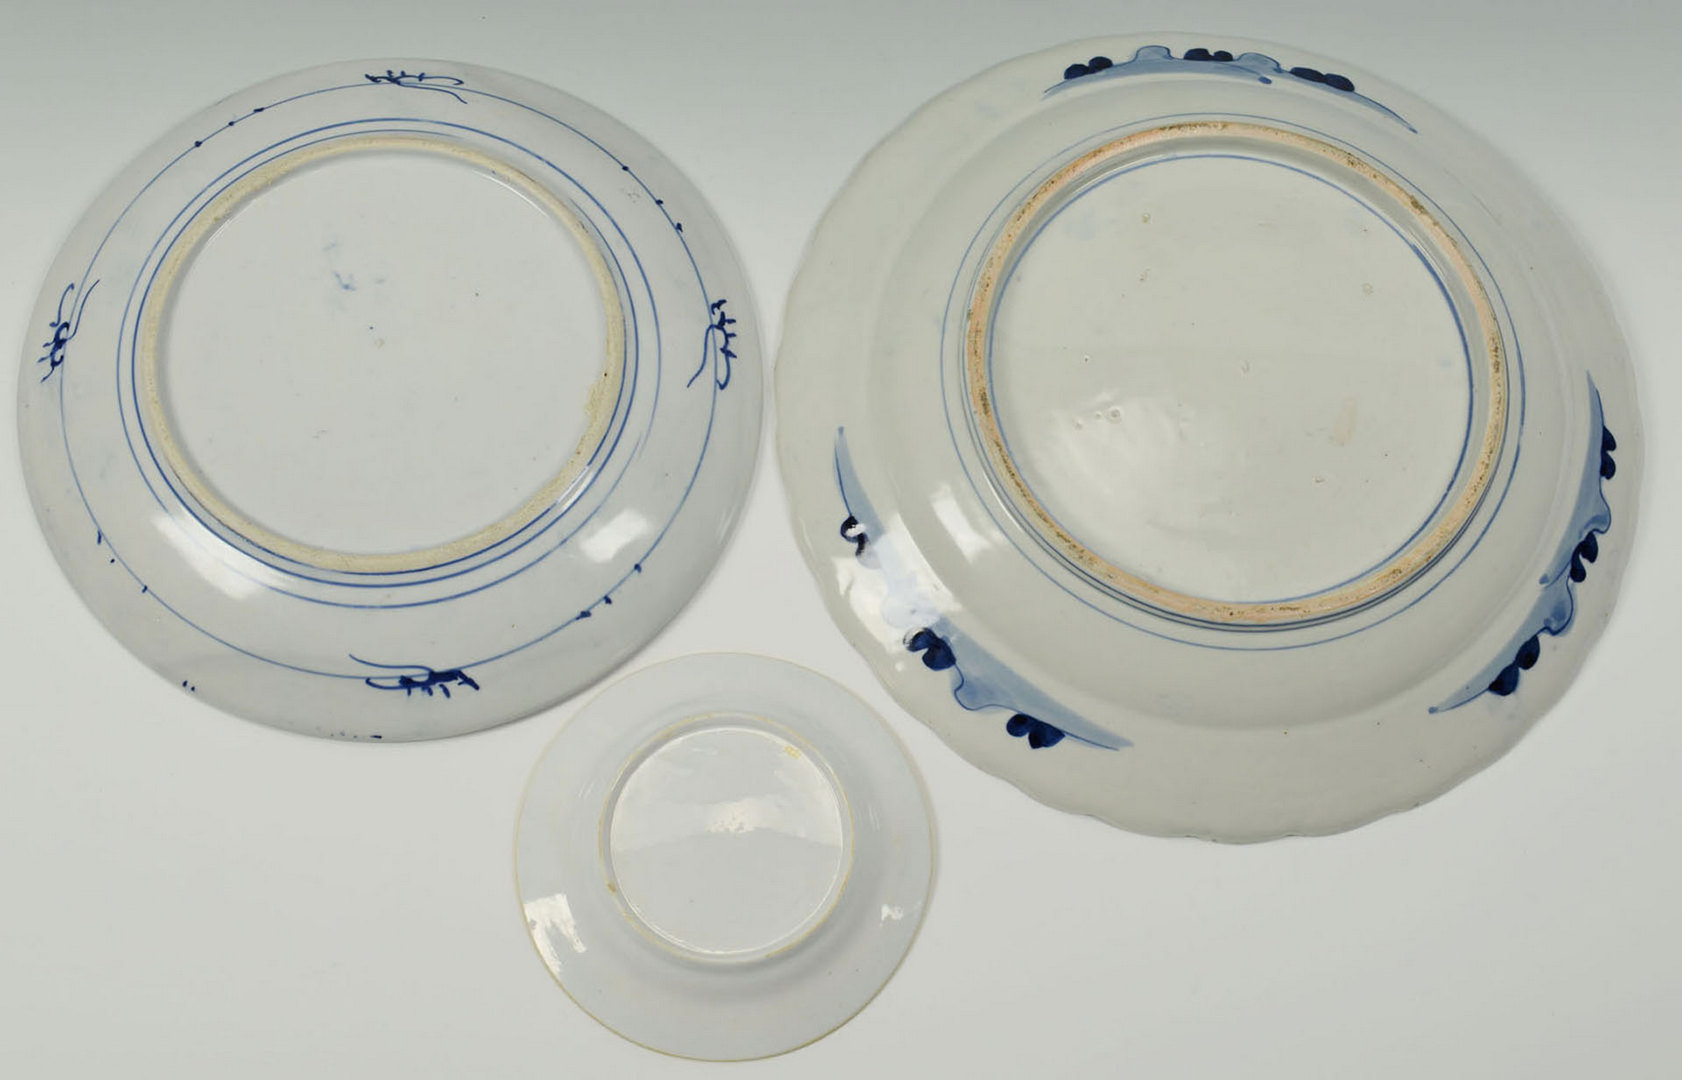 Lot 3088294: 2 Japanese Arita Chargers and Imari Style Plate